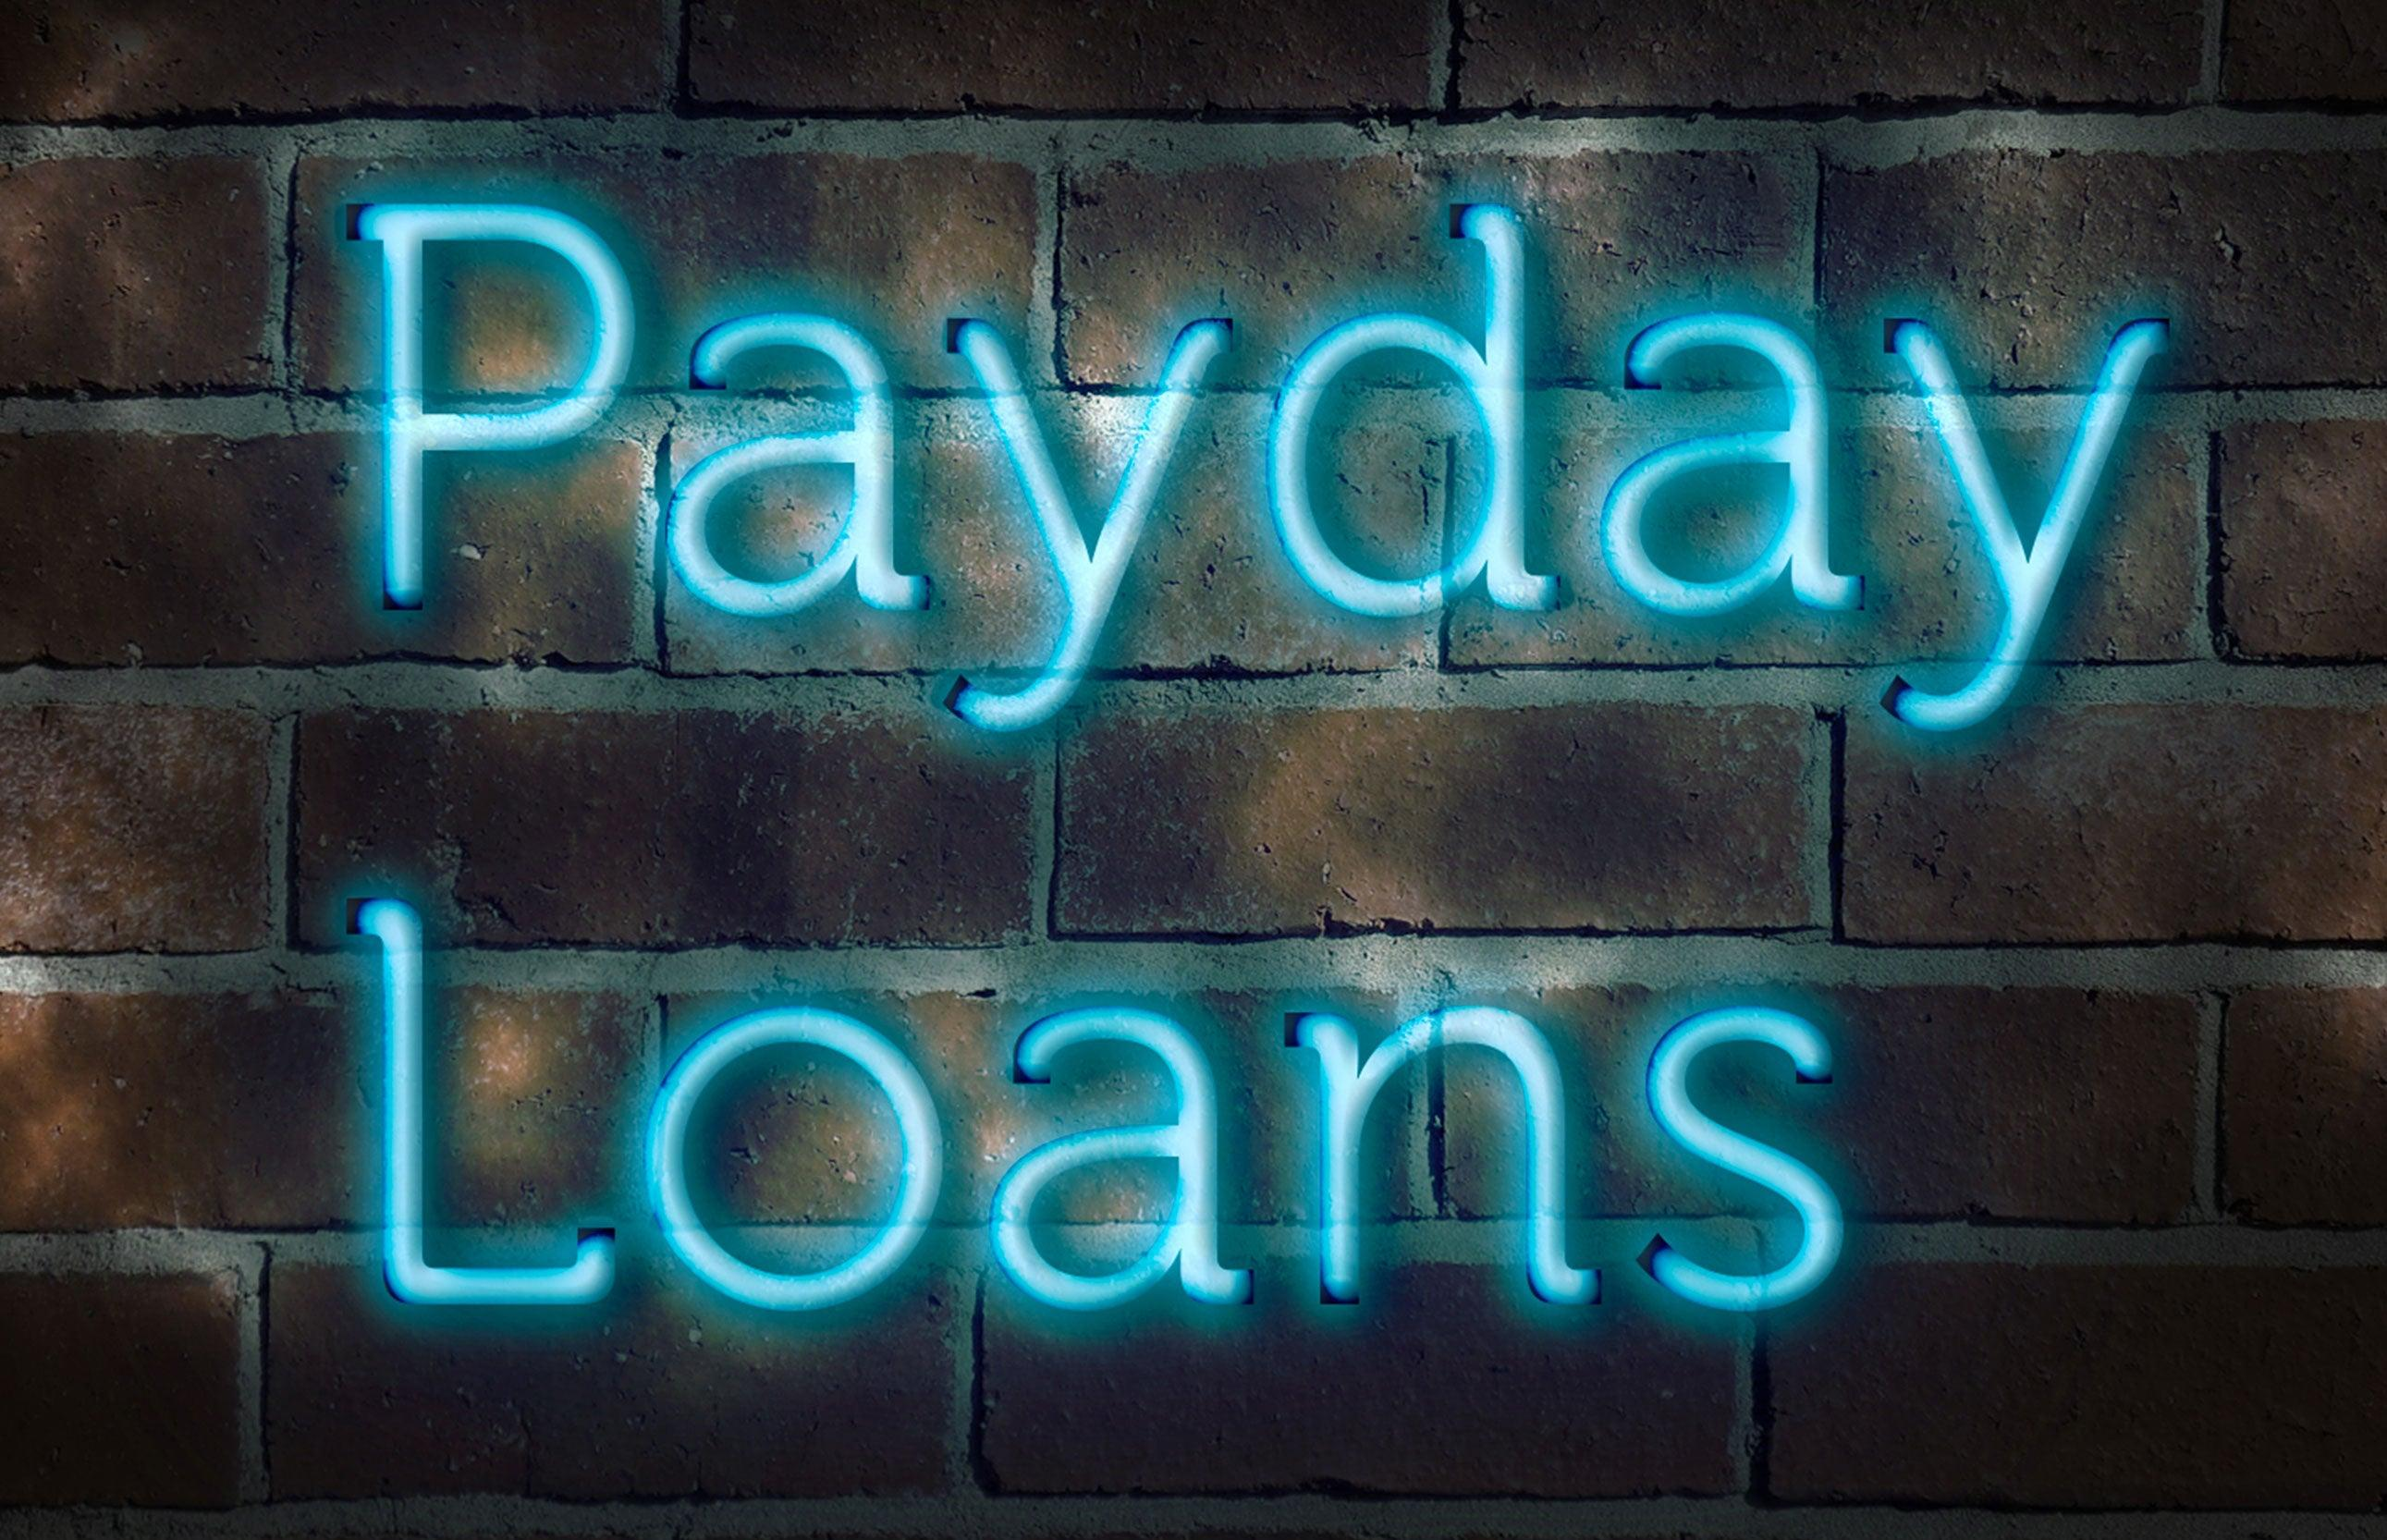 Payday Loans Kansas City >> How $2,500 in Payday Loans Turned Into $50K of Debt